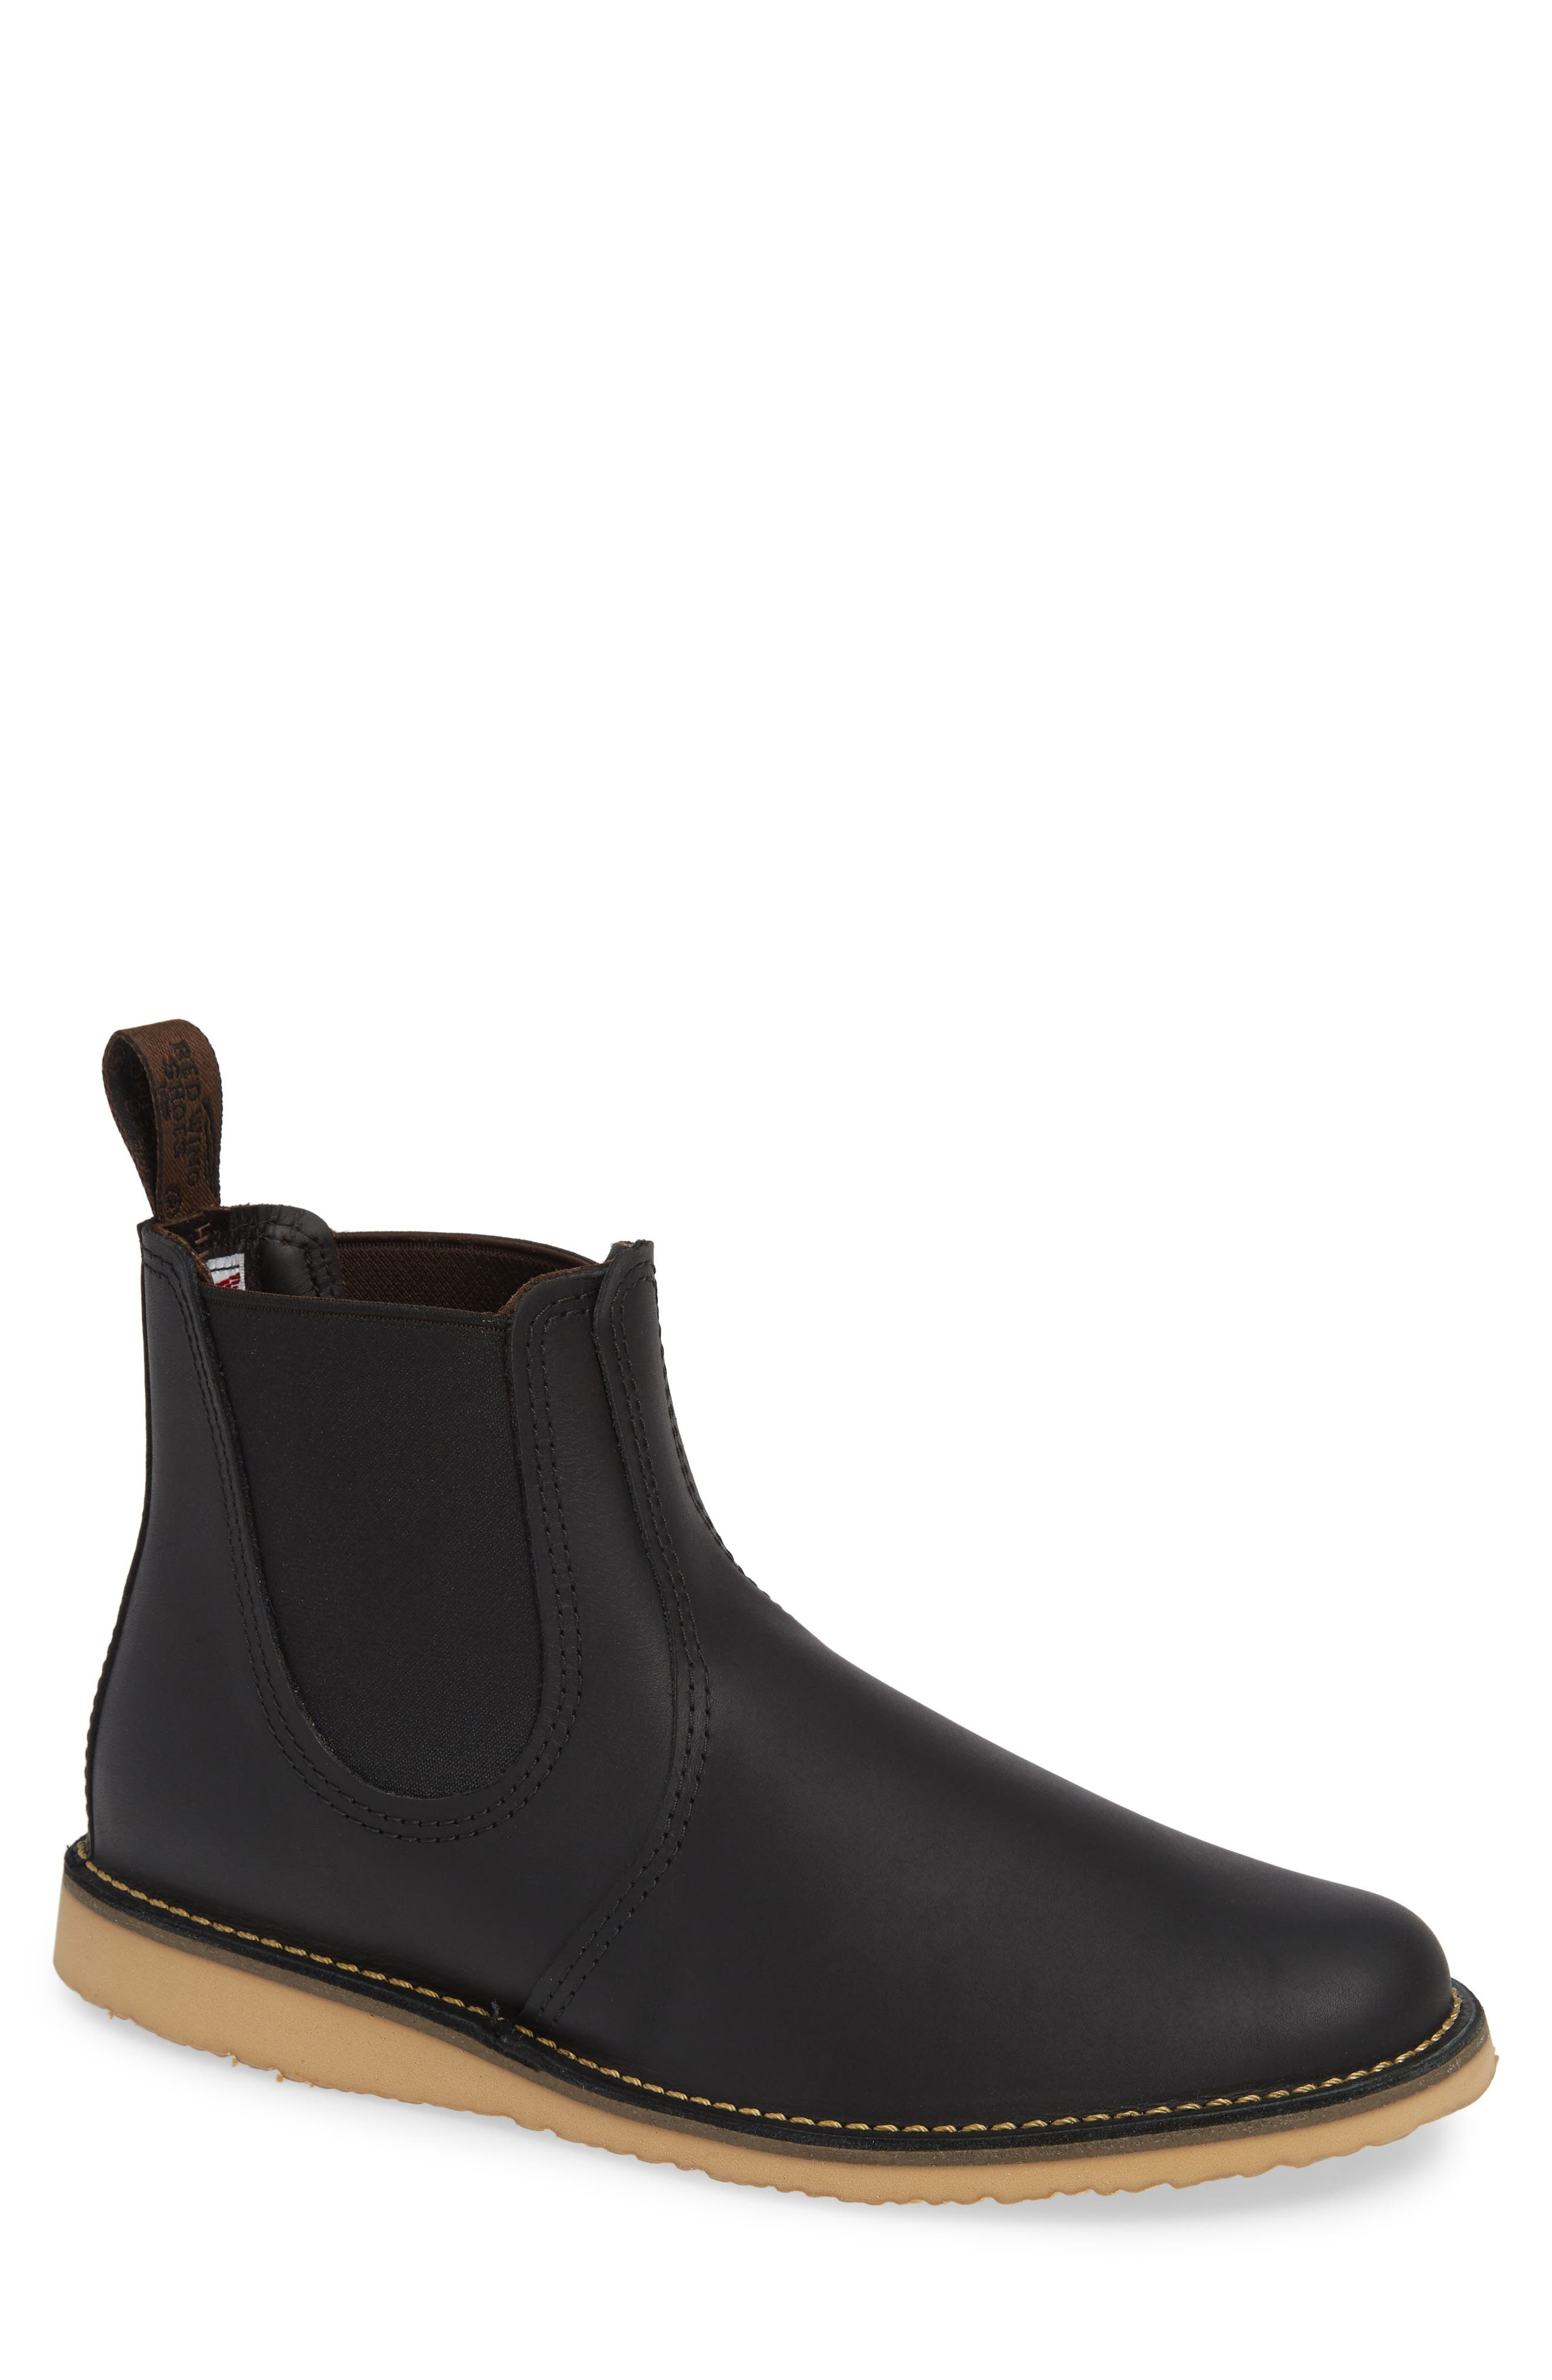 Red Wing Chelsea Boot, Black